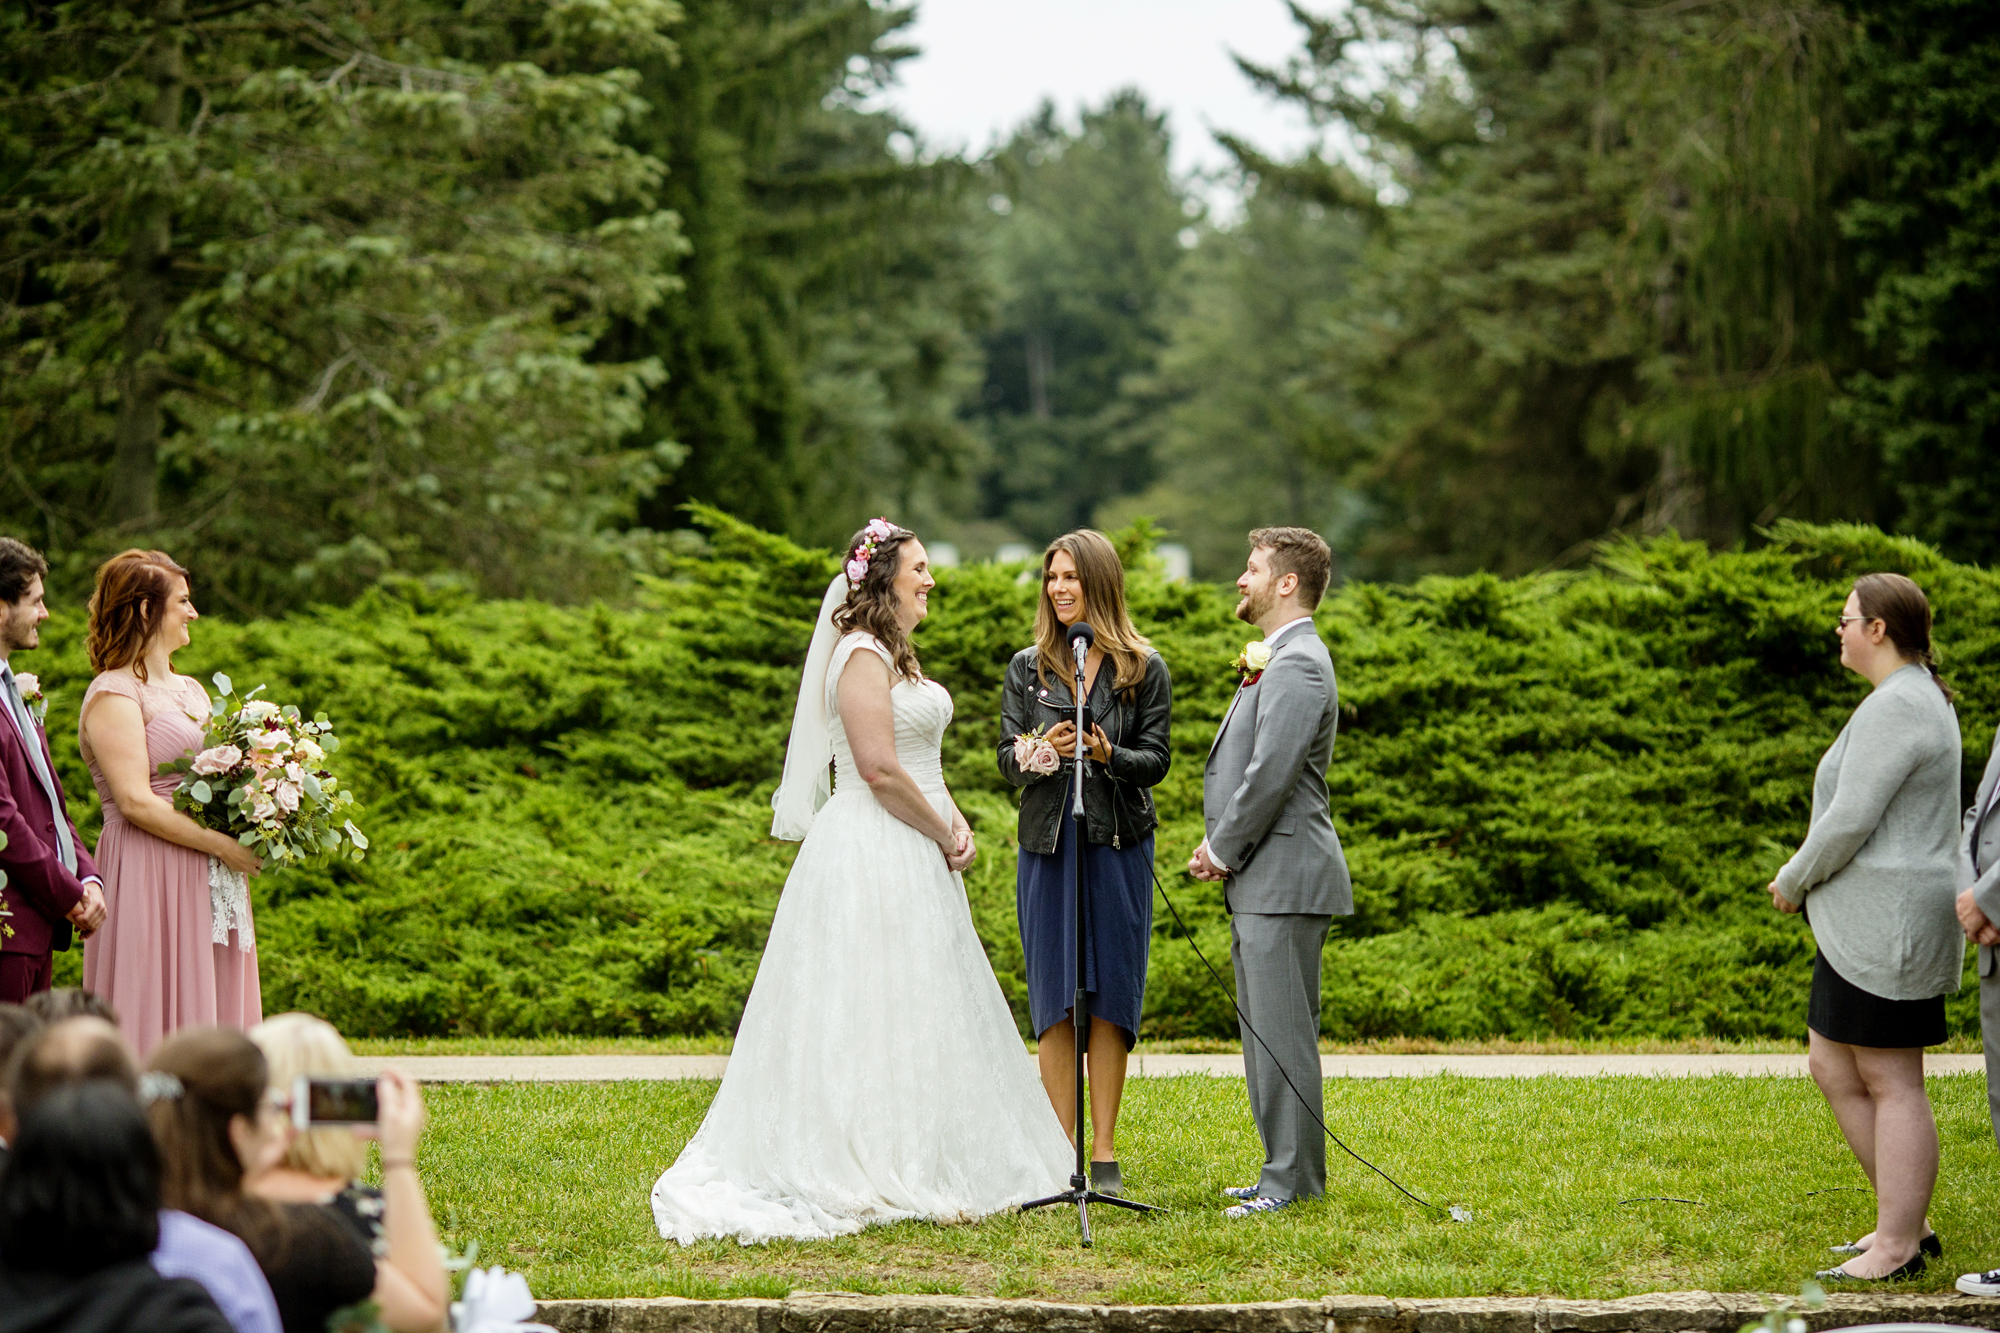 Seriously_Sabrina_Photography_Lisle_Illinois_Morton_Arboretum_Wedding_Day_Gowen72.jpg